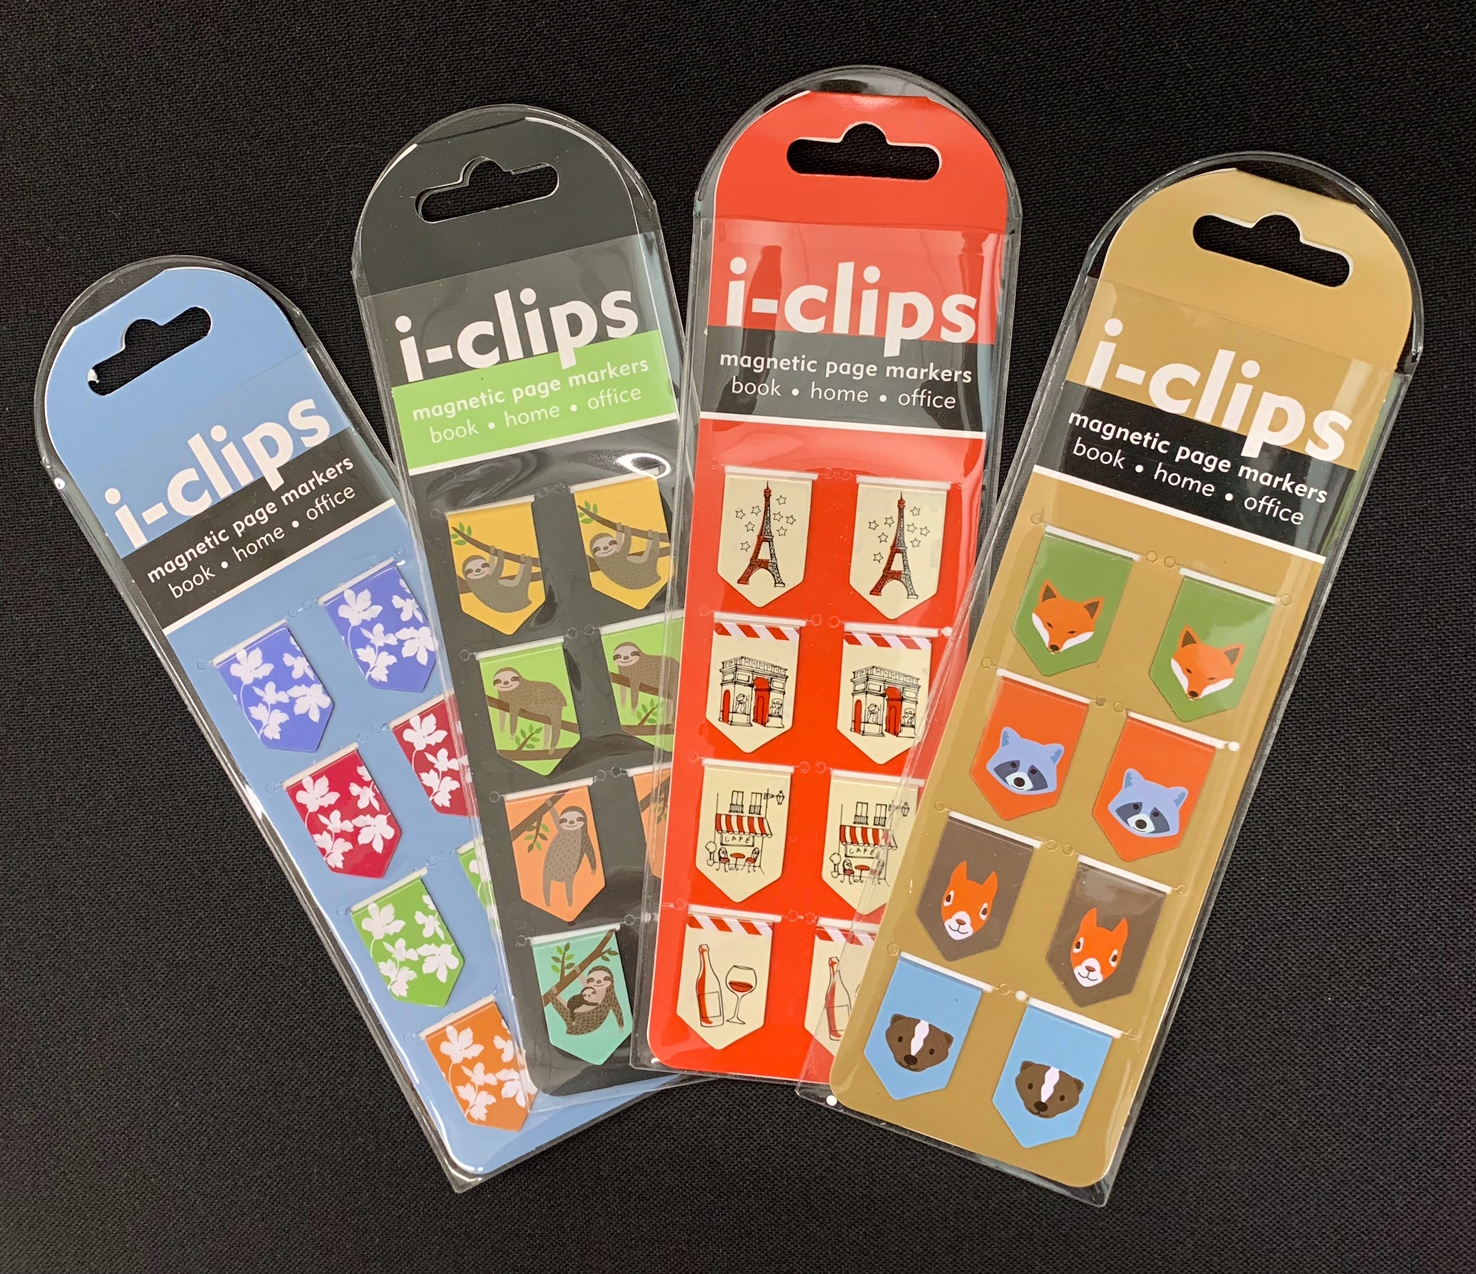 4 i-clips Magnetic Page Markers